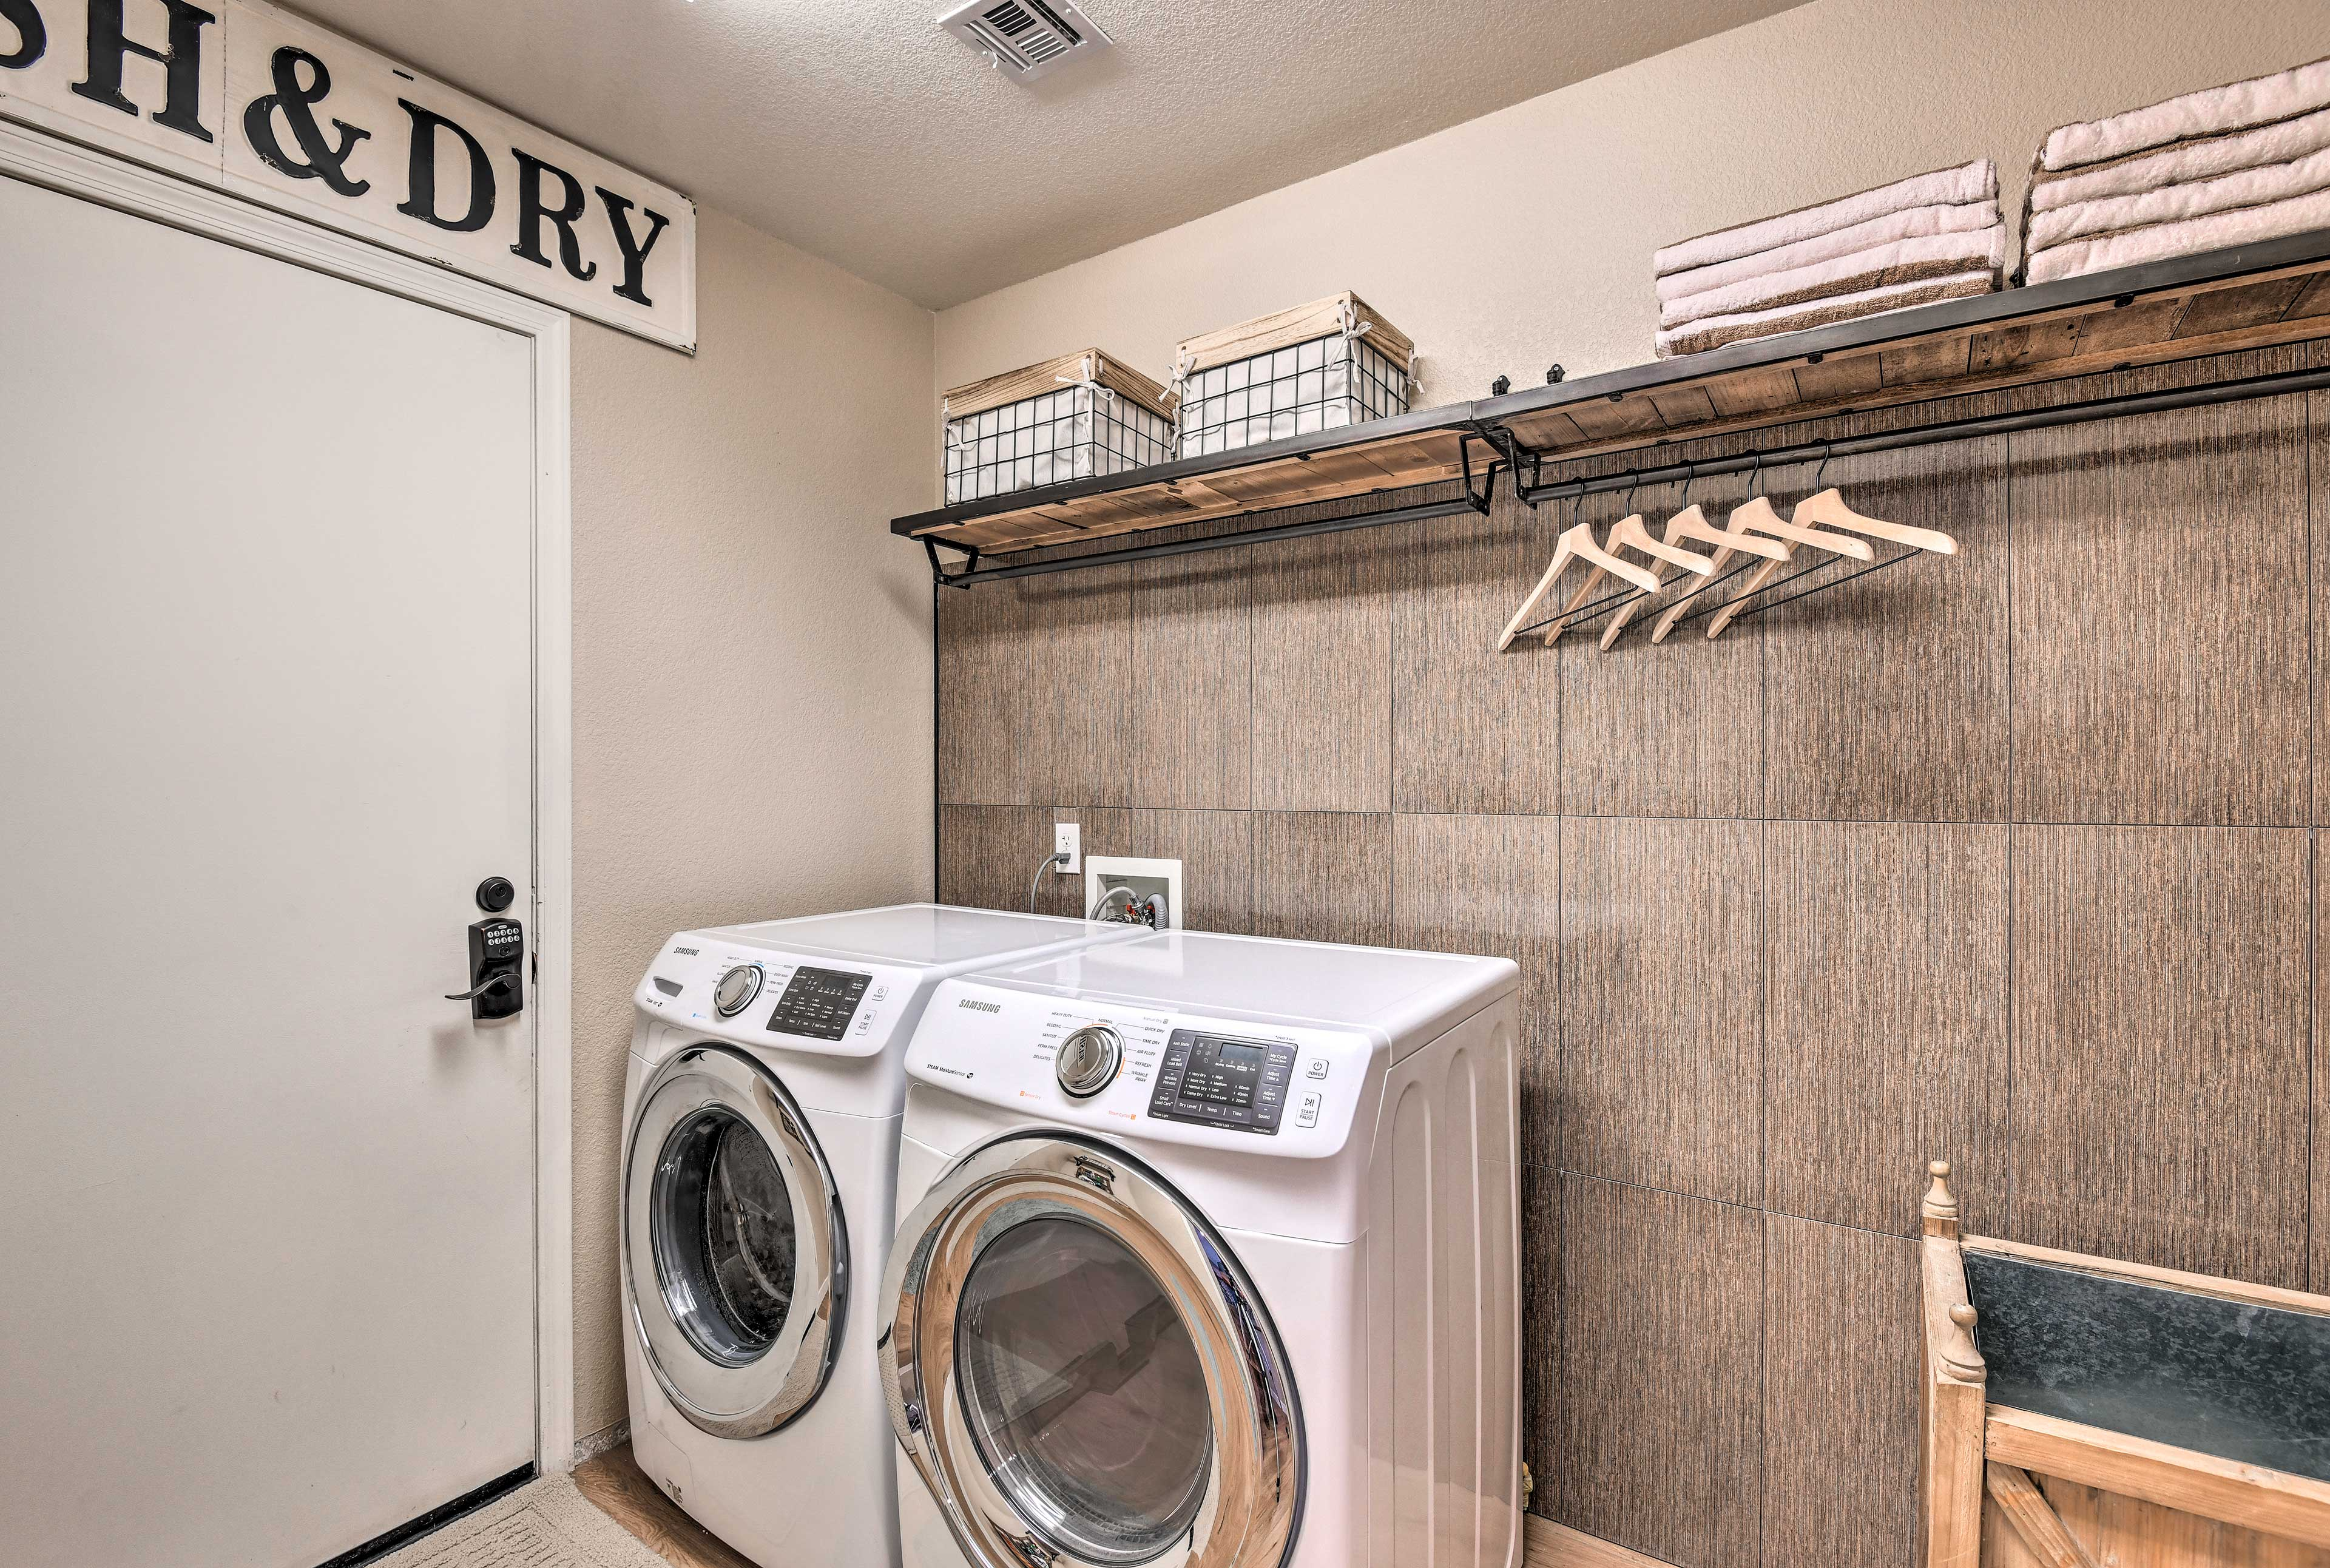 Toss your dirty clothes in the washer and dryer.